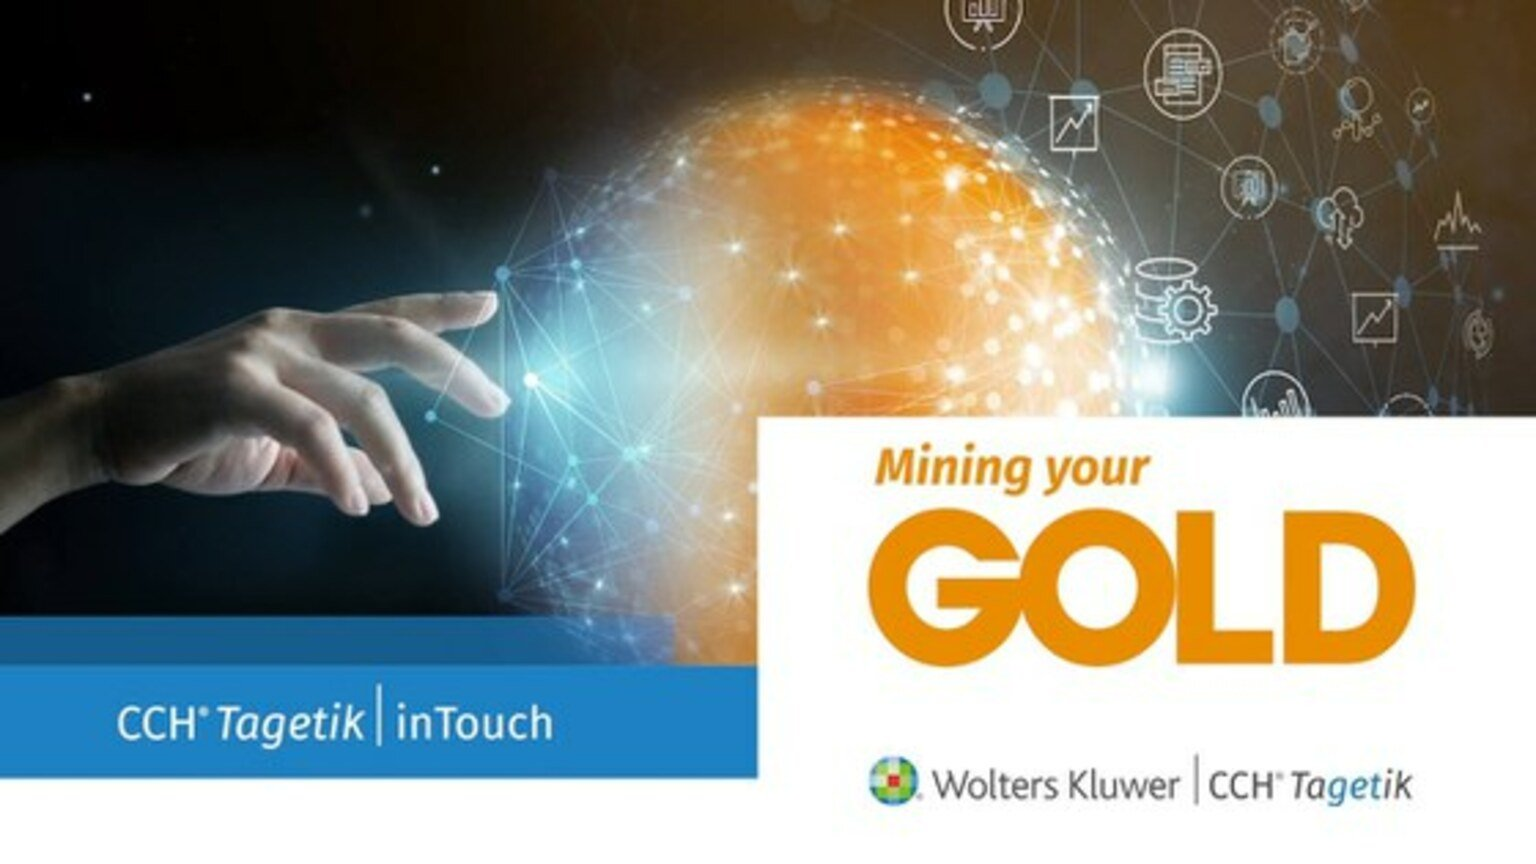 Mining the Gold